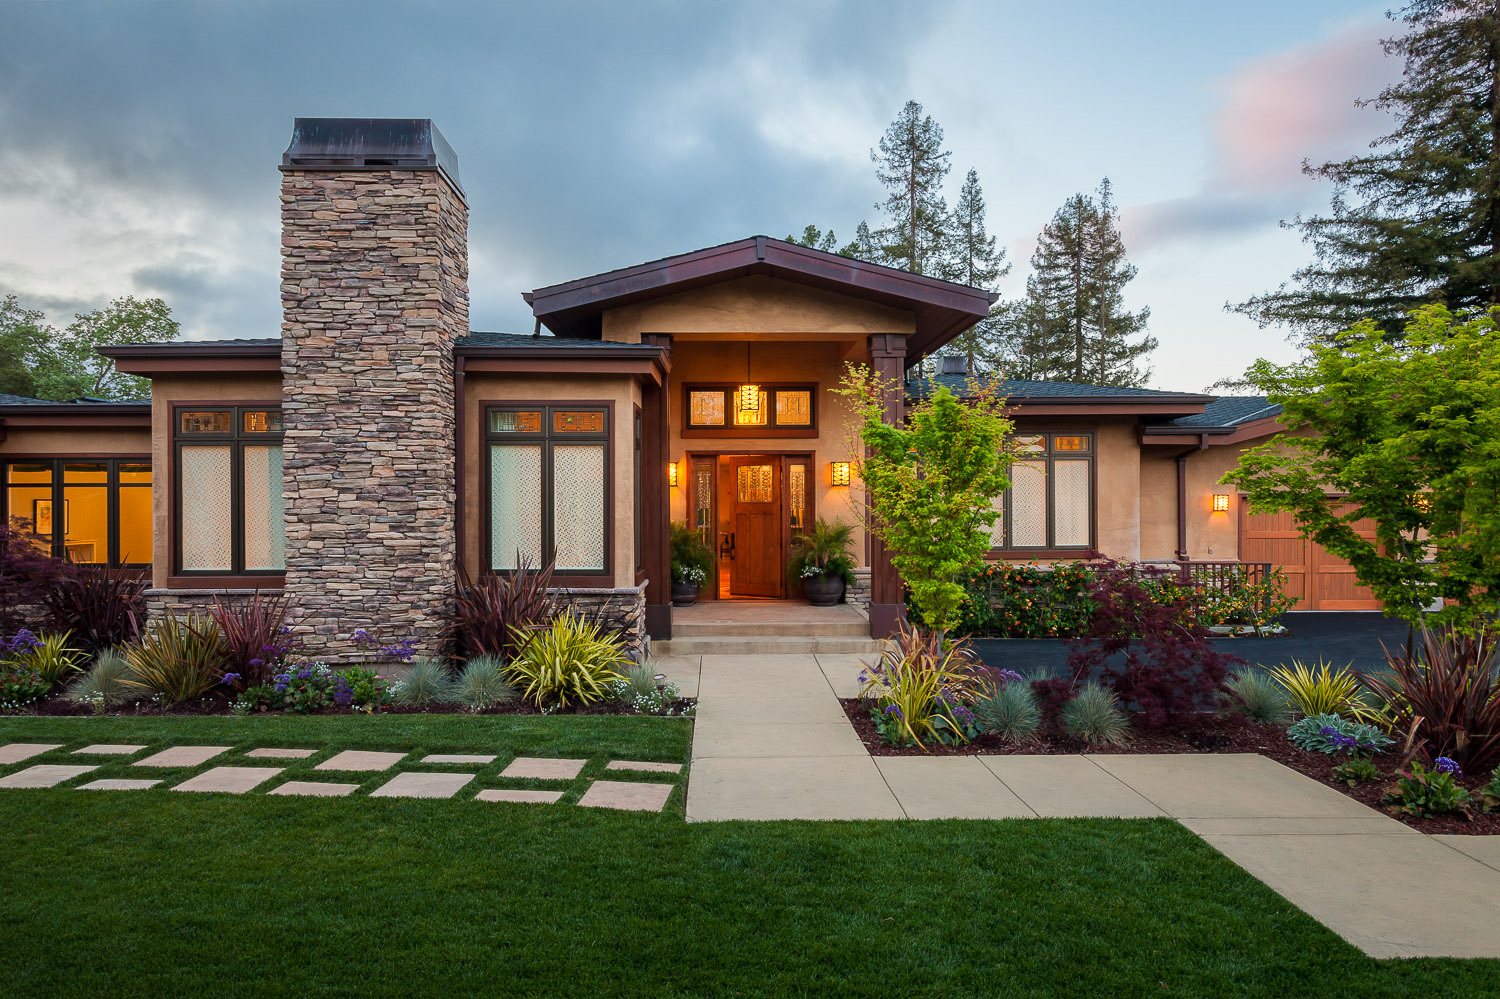 Top 15 house designs and architectural styles to ignite for Craftsman style architecture